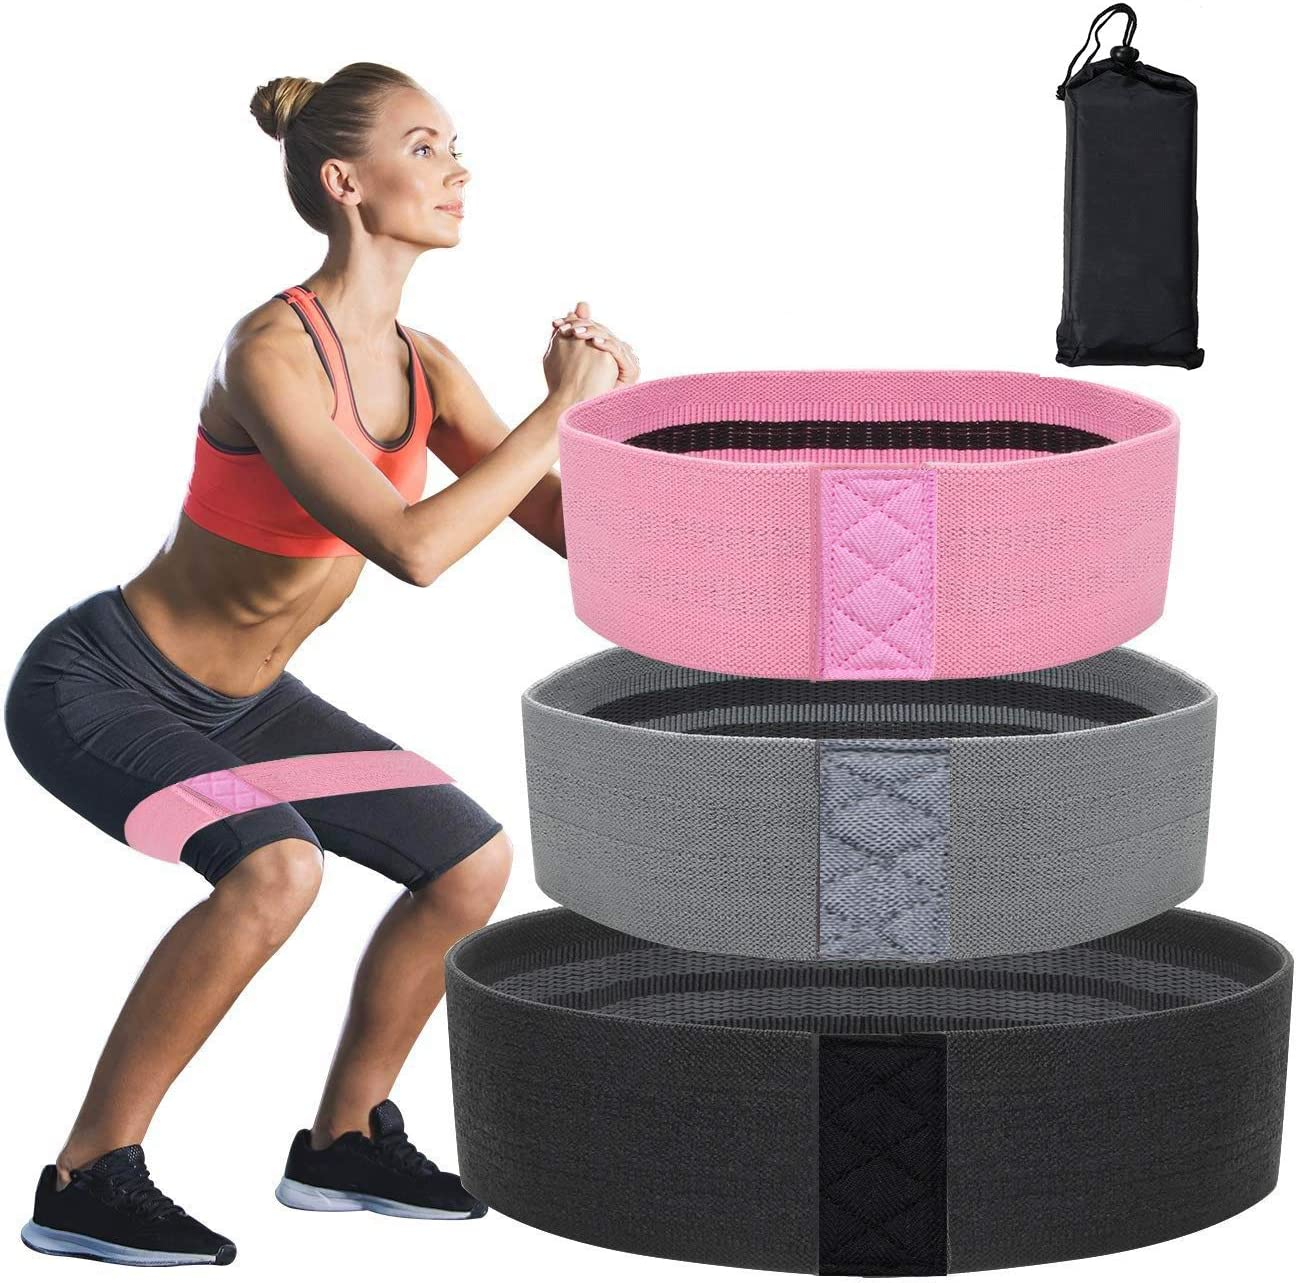 Max 67% OFF Resistance Bands for Legs and Butt Limited price - Non Ela Exercise Slip